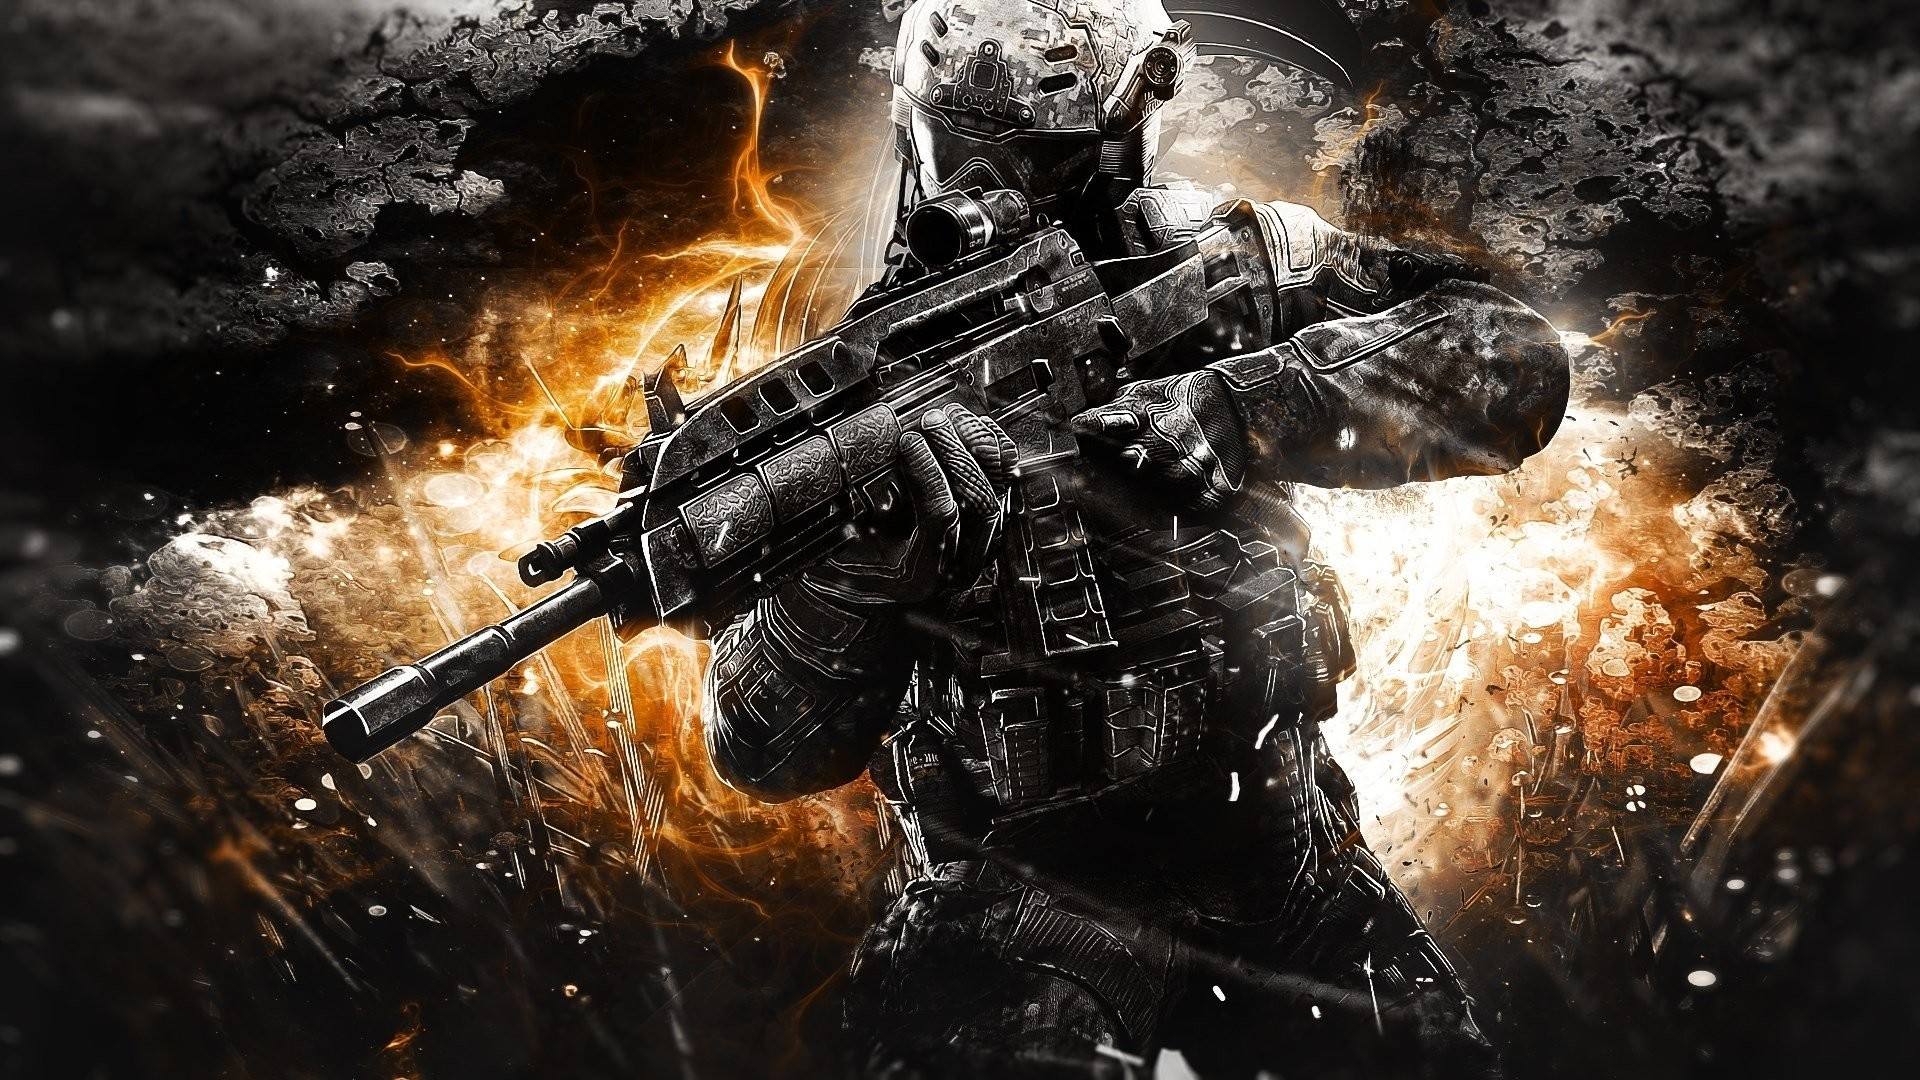 1920x1080 Call Of Duty Wallpapers Black Ops 2 Wallpapers) – HD Wallpapers